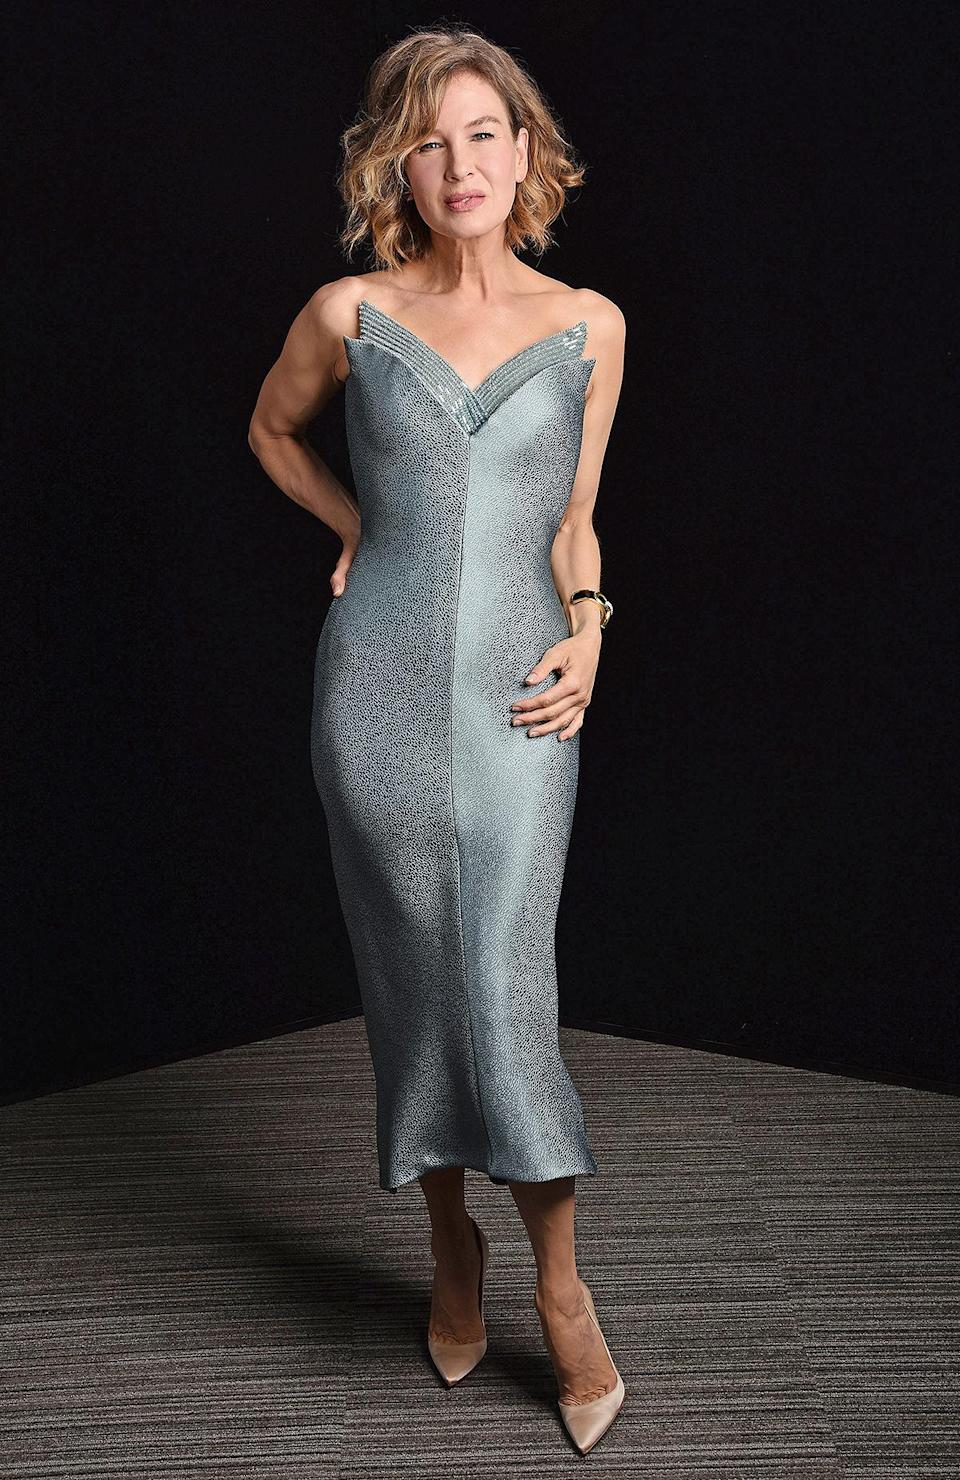 """<p>in a custom Armani Privé cerulean blue cocktail dress with crystal-embroidered neckline and David Webb jewels.</p> <p>""""Renée radiated in this luminous custom Armani Privé dress,"""" the star's stylist <a href=""""https://www.instagram.com/petraflannery/?hl=en"""" rel=""""nofollow noopener"""" target=""""_blank"""" data-ylk=""""slk:Petra Flannery"""" class=""""link rapid-noclick-resp"""">Petra Flannery</a> tells PEOPLE. """"I loved the angular beaded neckline.""""</p>"""